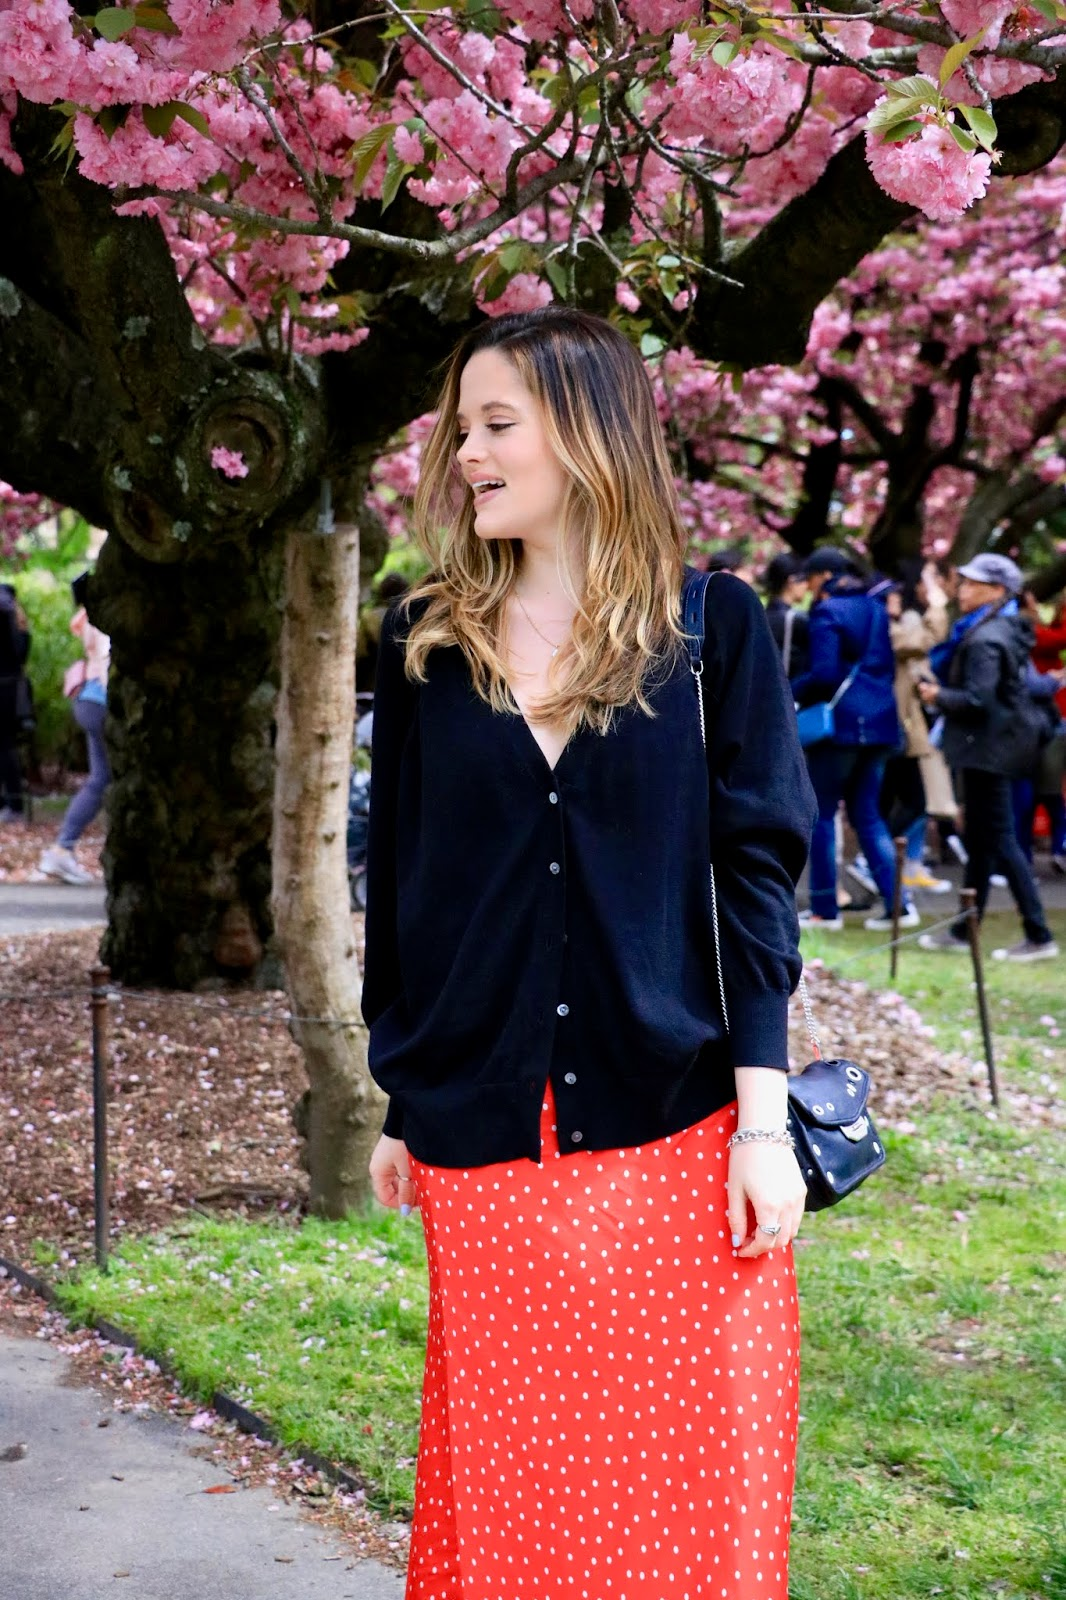 Nyc fashion blogger Kathleen Harper at the Brooklyn Botanical Garden's Cherry Blossom Festival